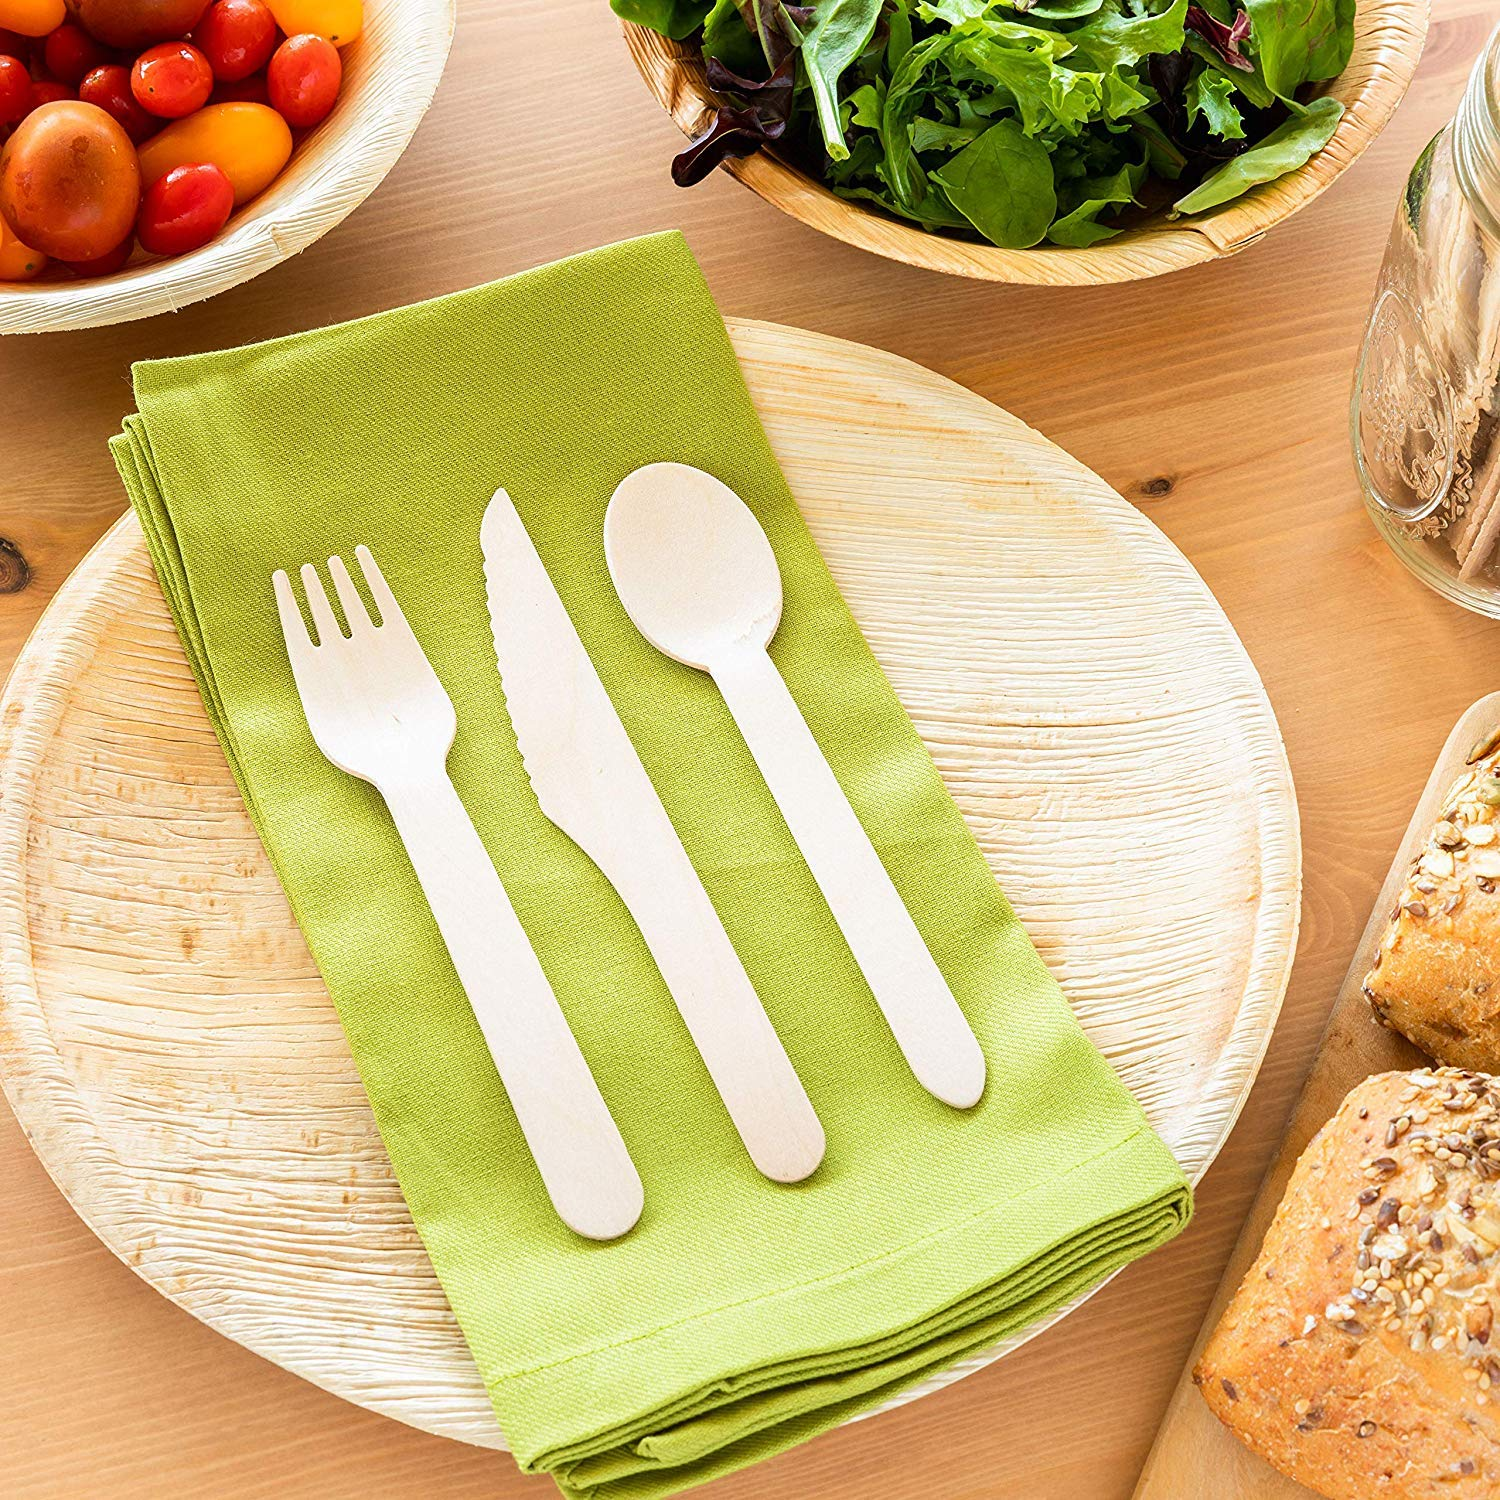 Disposable Wooden Cutlery Set Birchwood- Eco Friendly Biodegradable Wooden Cutlery - Plastic Free Wooden Disposable Utensils - Compostable Cutlery - 120 Wooden Forks,120 Wooden Spoons,60 Wooden Knives